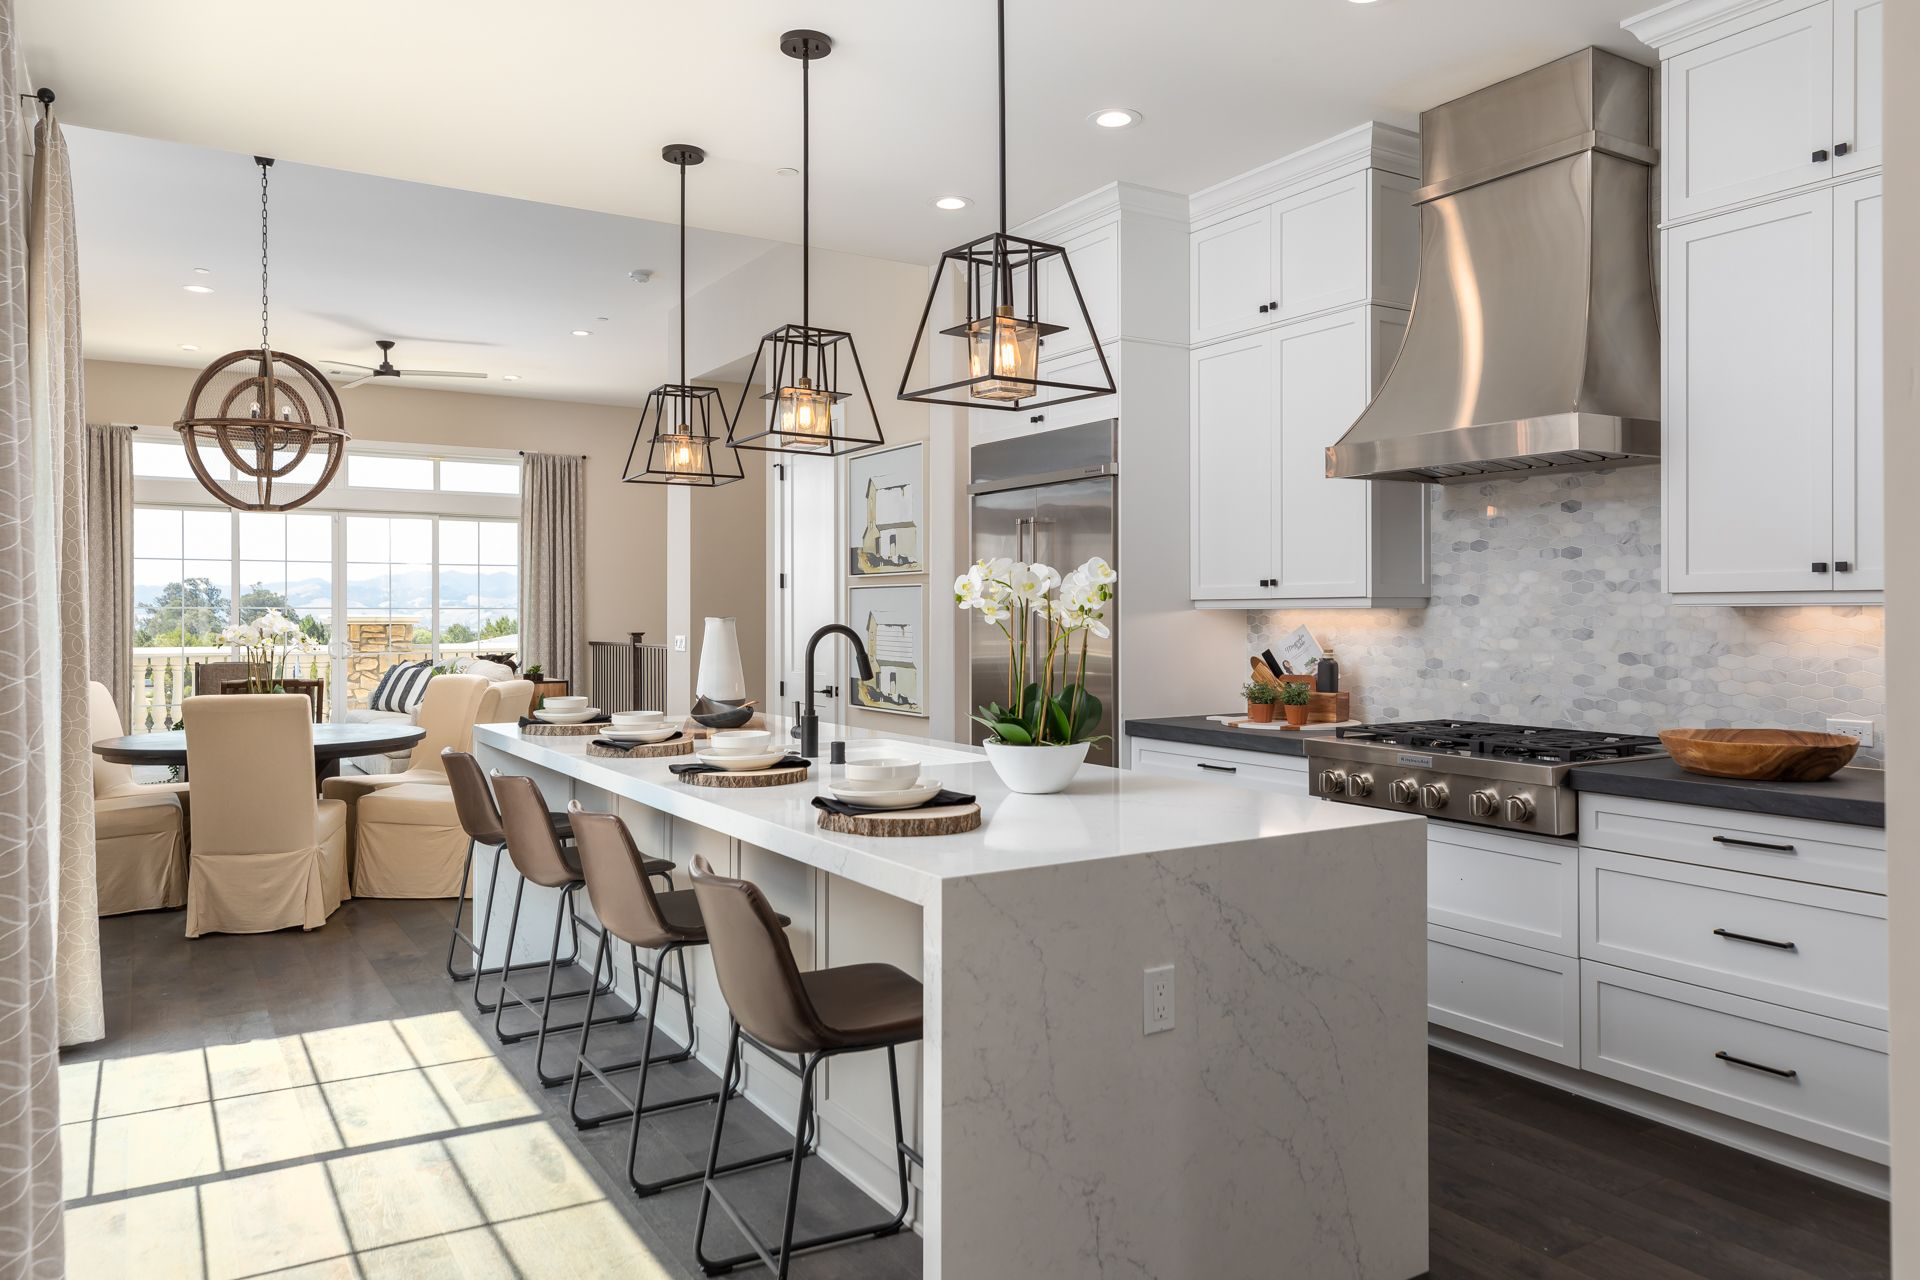 Kitchen featured in the Islay By Ladera at Righetti in San Luis Obispo, CA